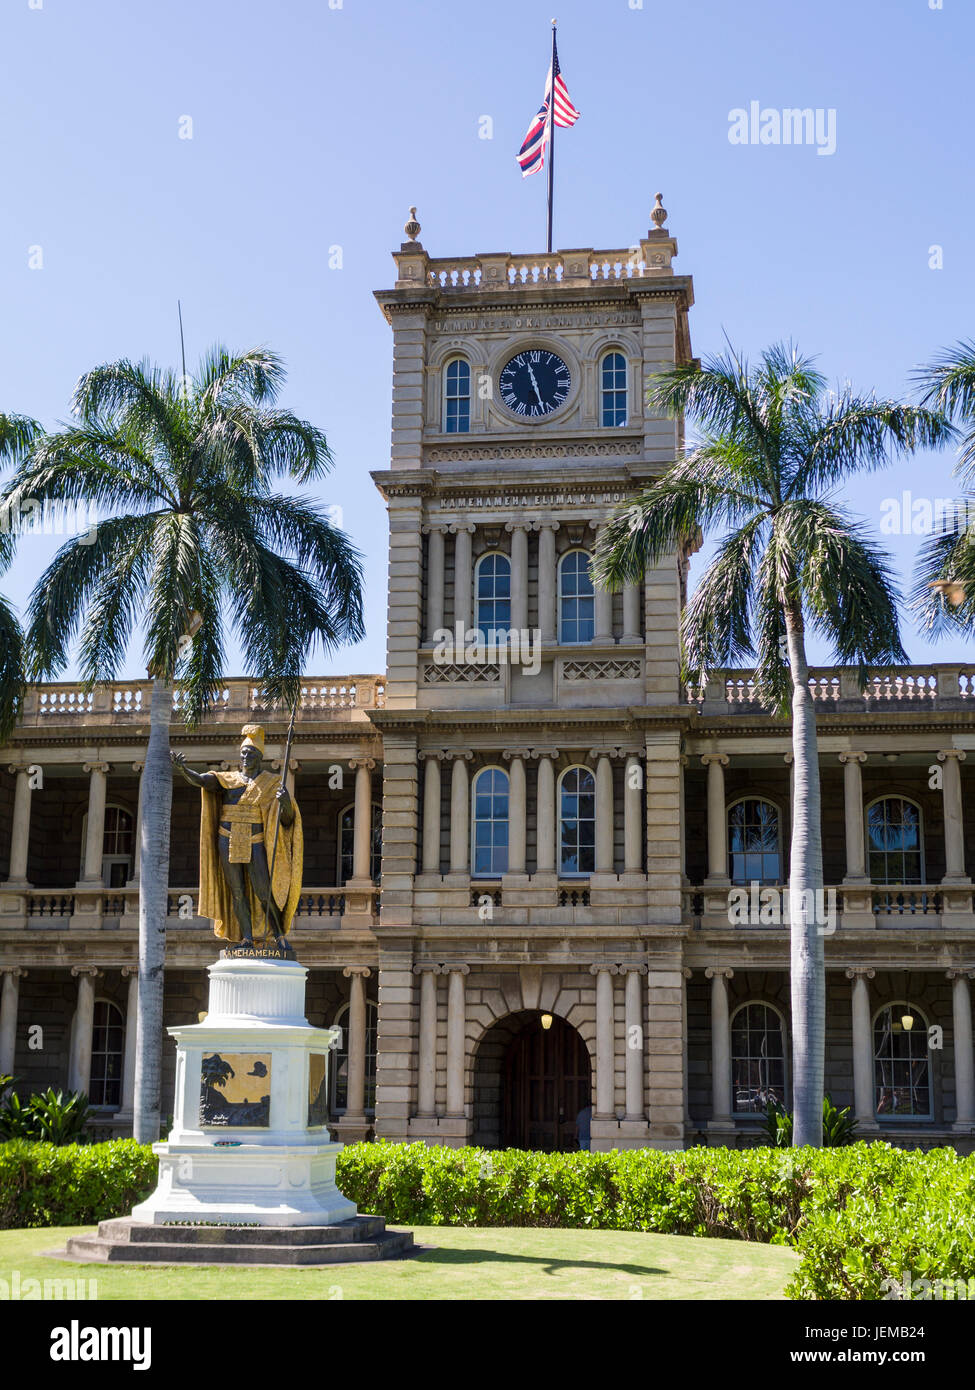 kamehameha ich statue in honolulu uhrturm des altbaus justiz ist enscribed in hawaii ua mau ke. Black Bedroom Furniture Sets. Home Design Ideas